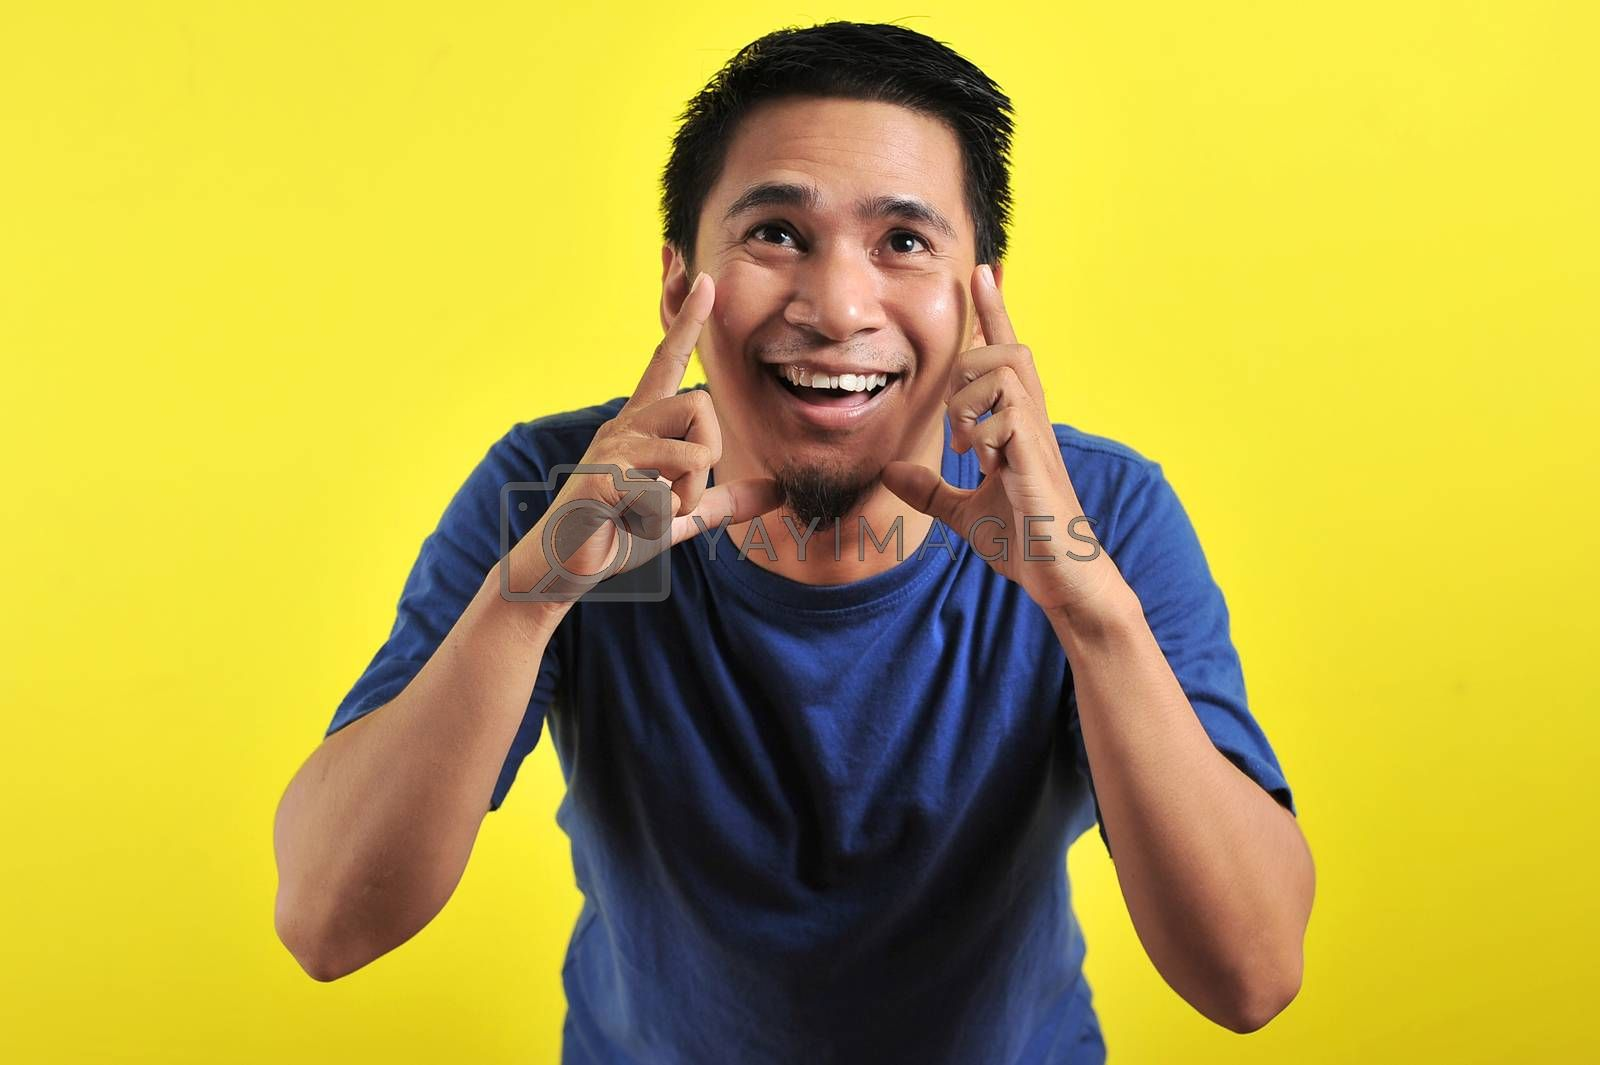 Close up portrait of young man yelling with open mouth, isolated on yellow background